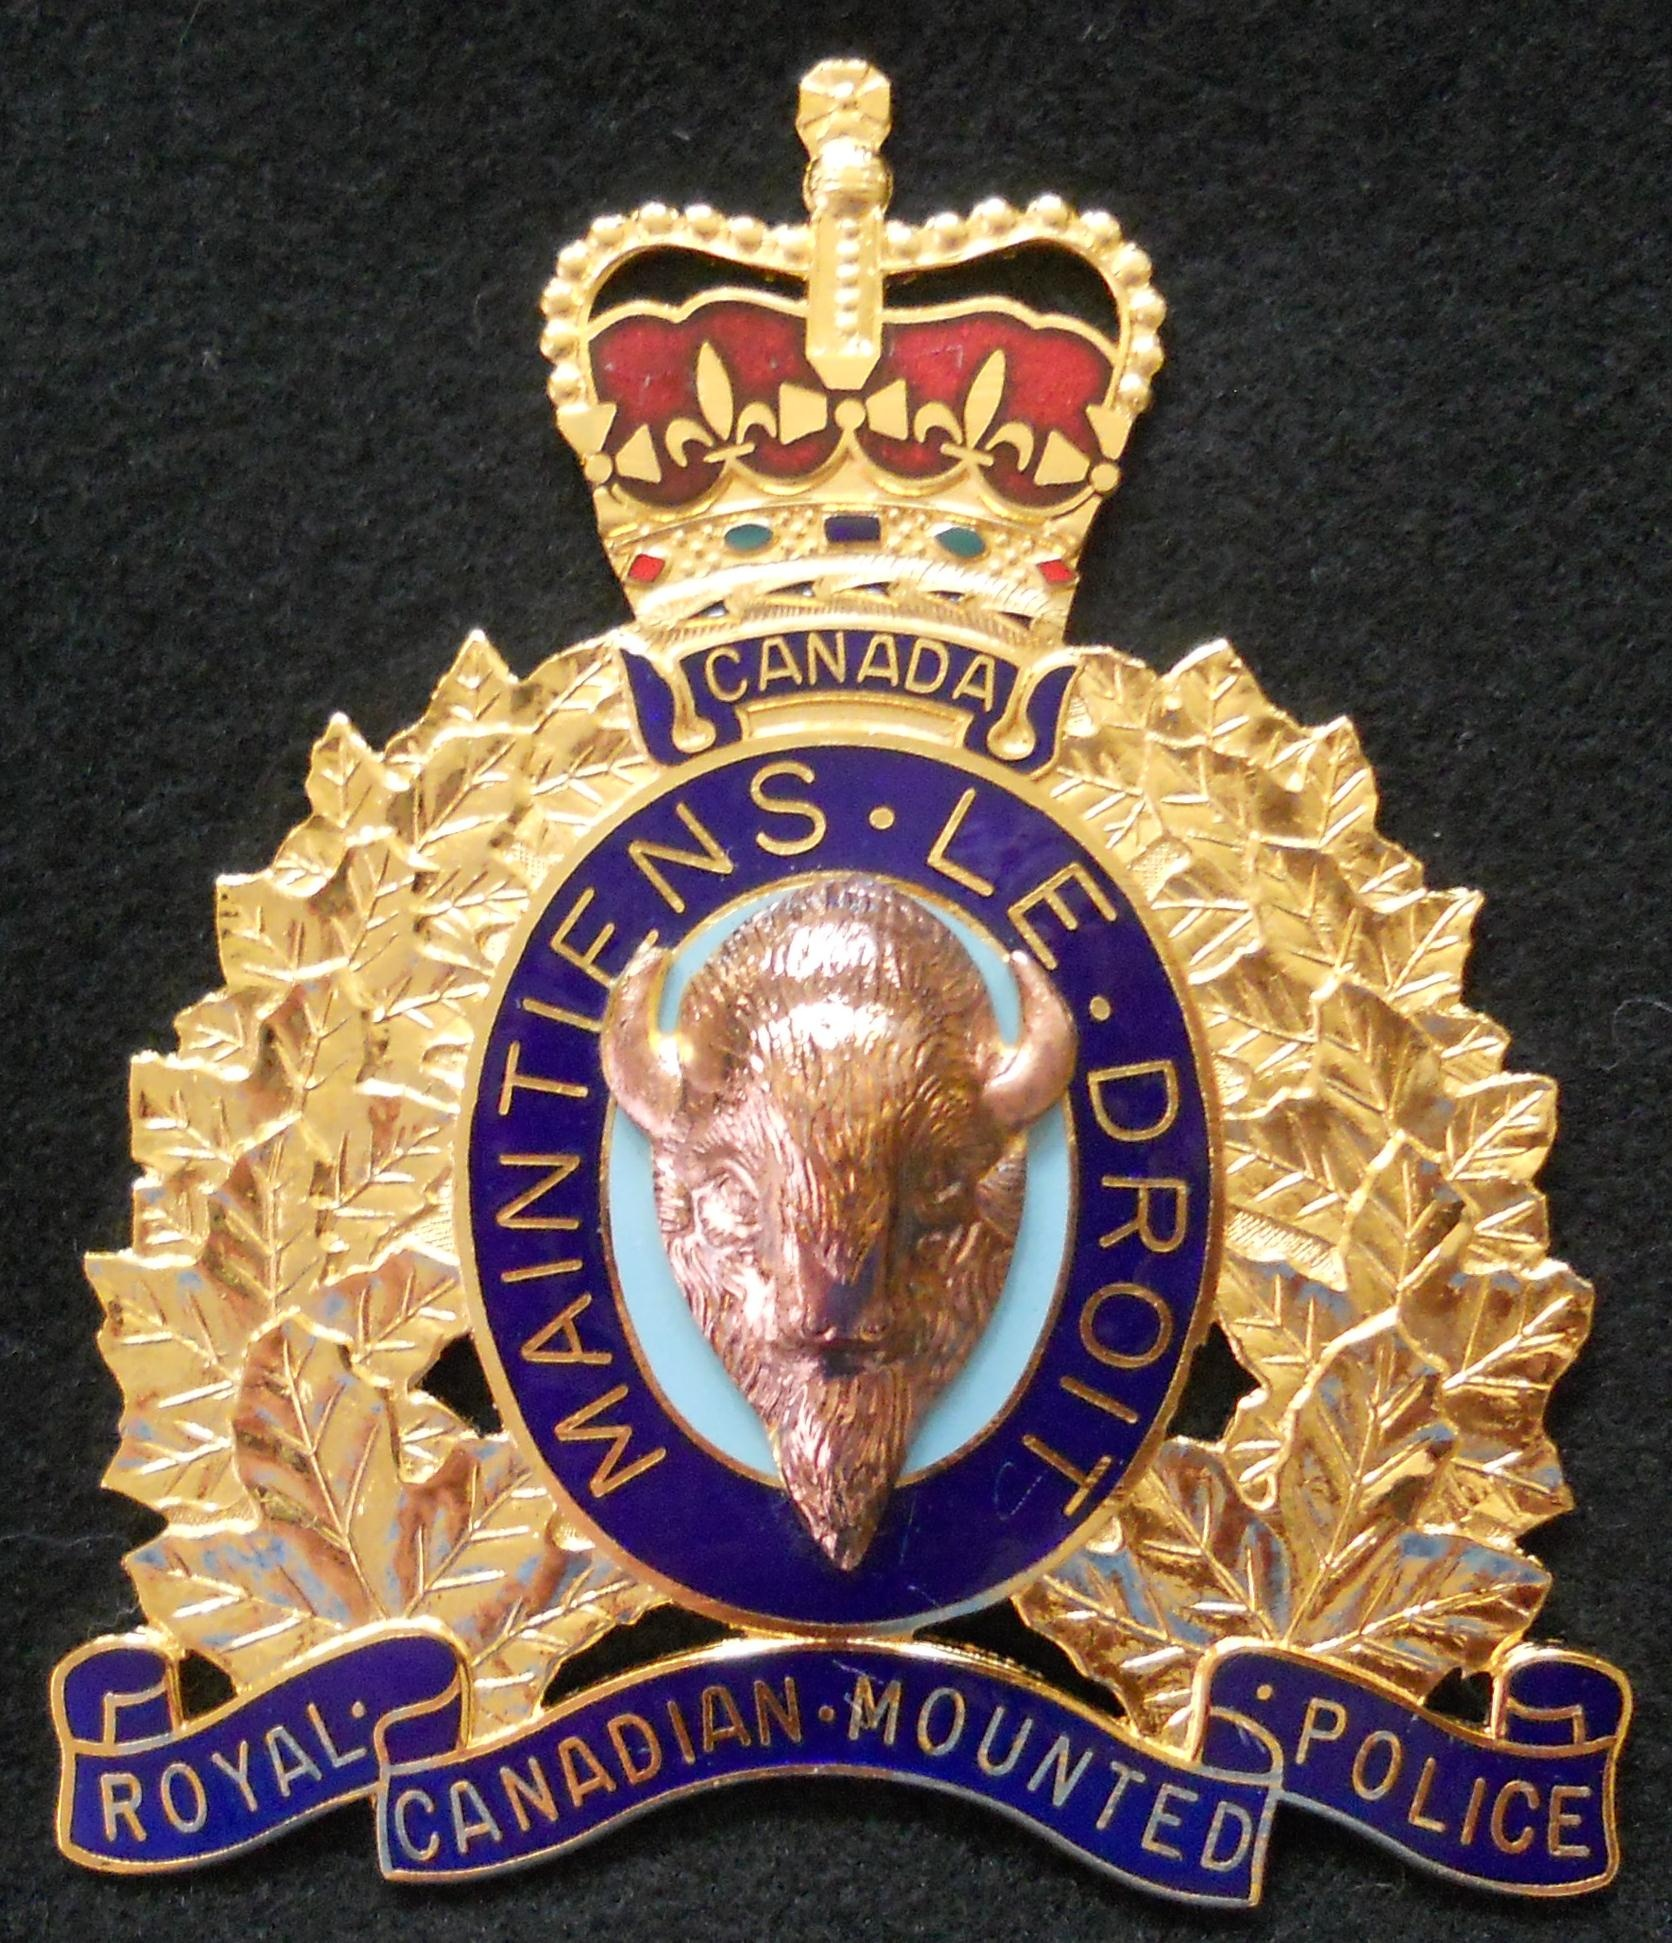 RURAL HOMEOWNER ARRESTED NEAR OKOTOKS FOLLOWING A SHOOTING ON THE PROPERTY